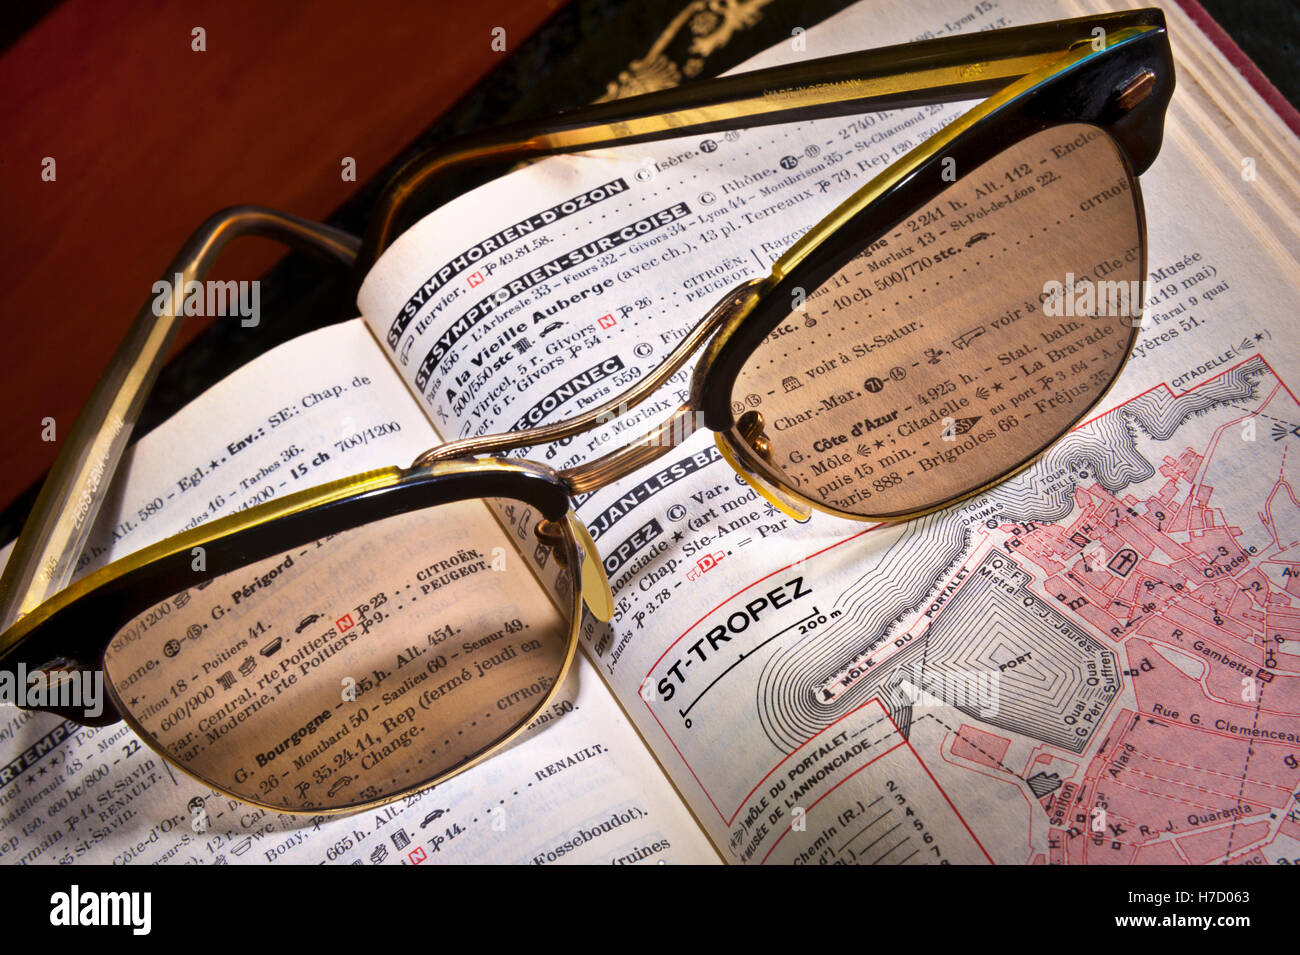 1950's Vintage retro Zeiss sunglasses on old 50s-60s French Guide Michelin travel guide book on St-Tropez page - Stock Image